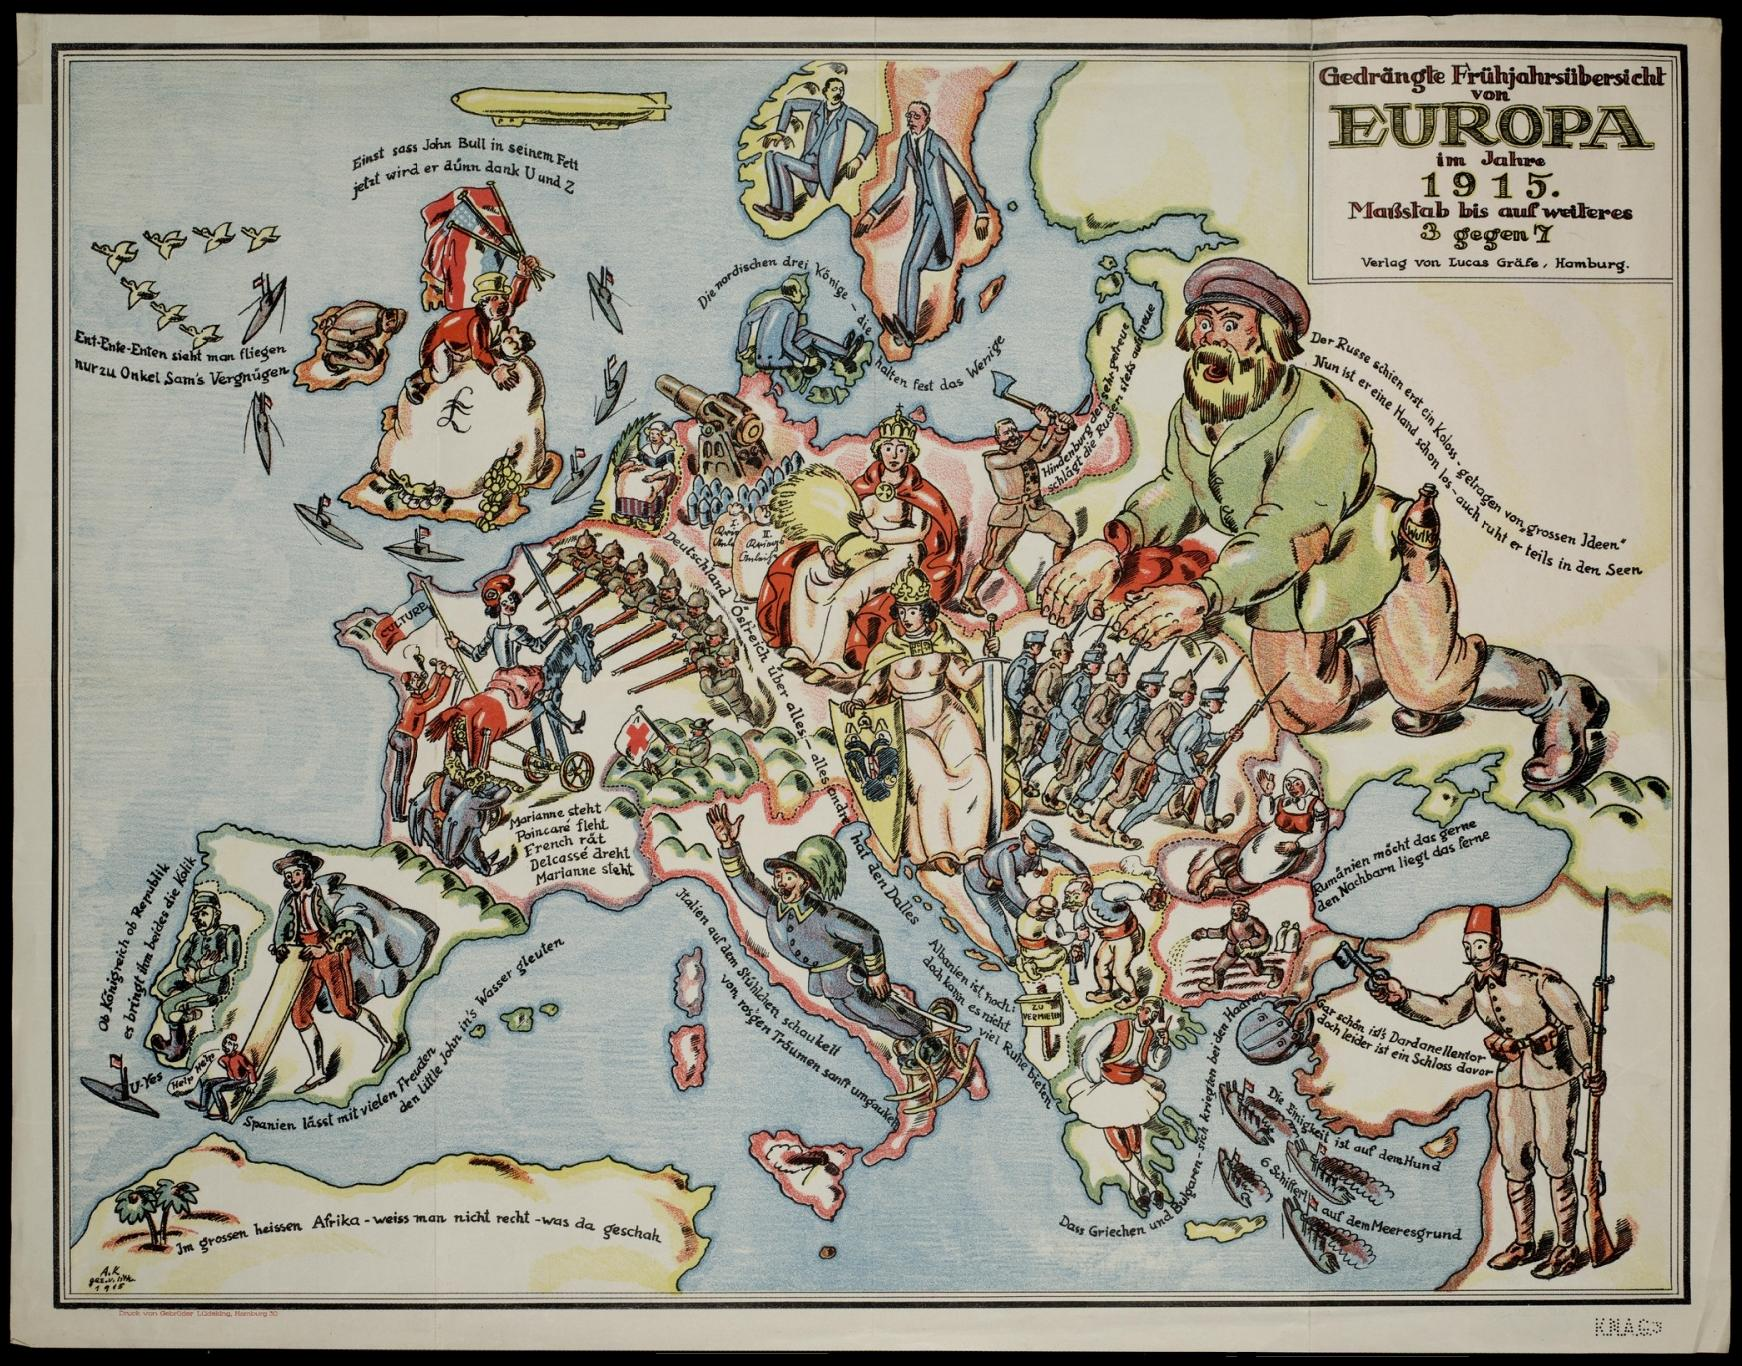 carte satire map caricature 17 Cartes satiriques à travers l'histoire